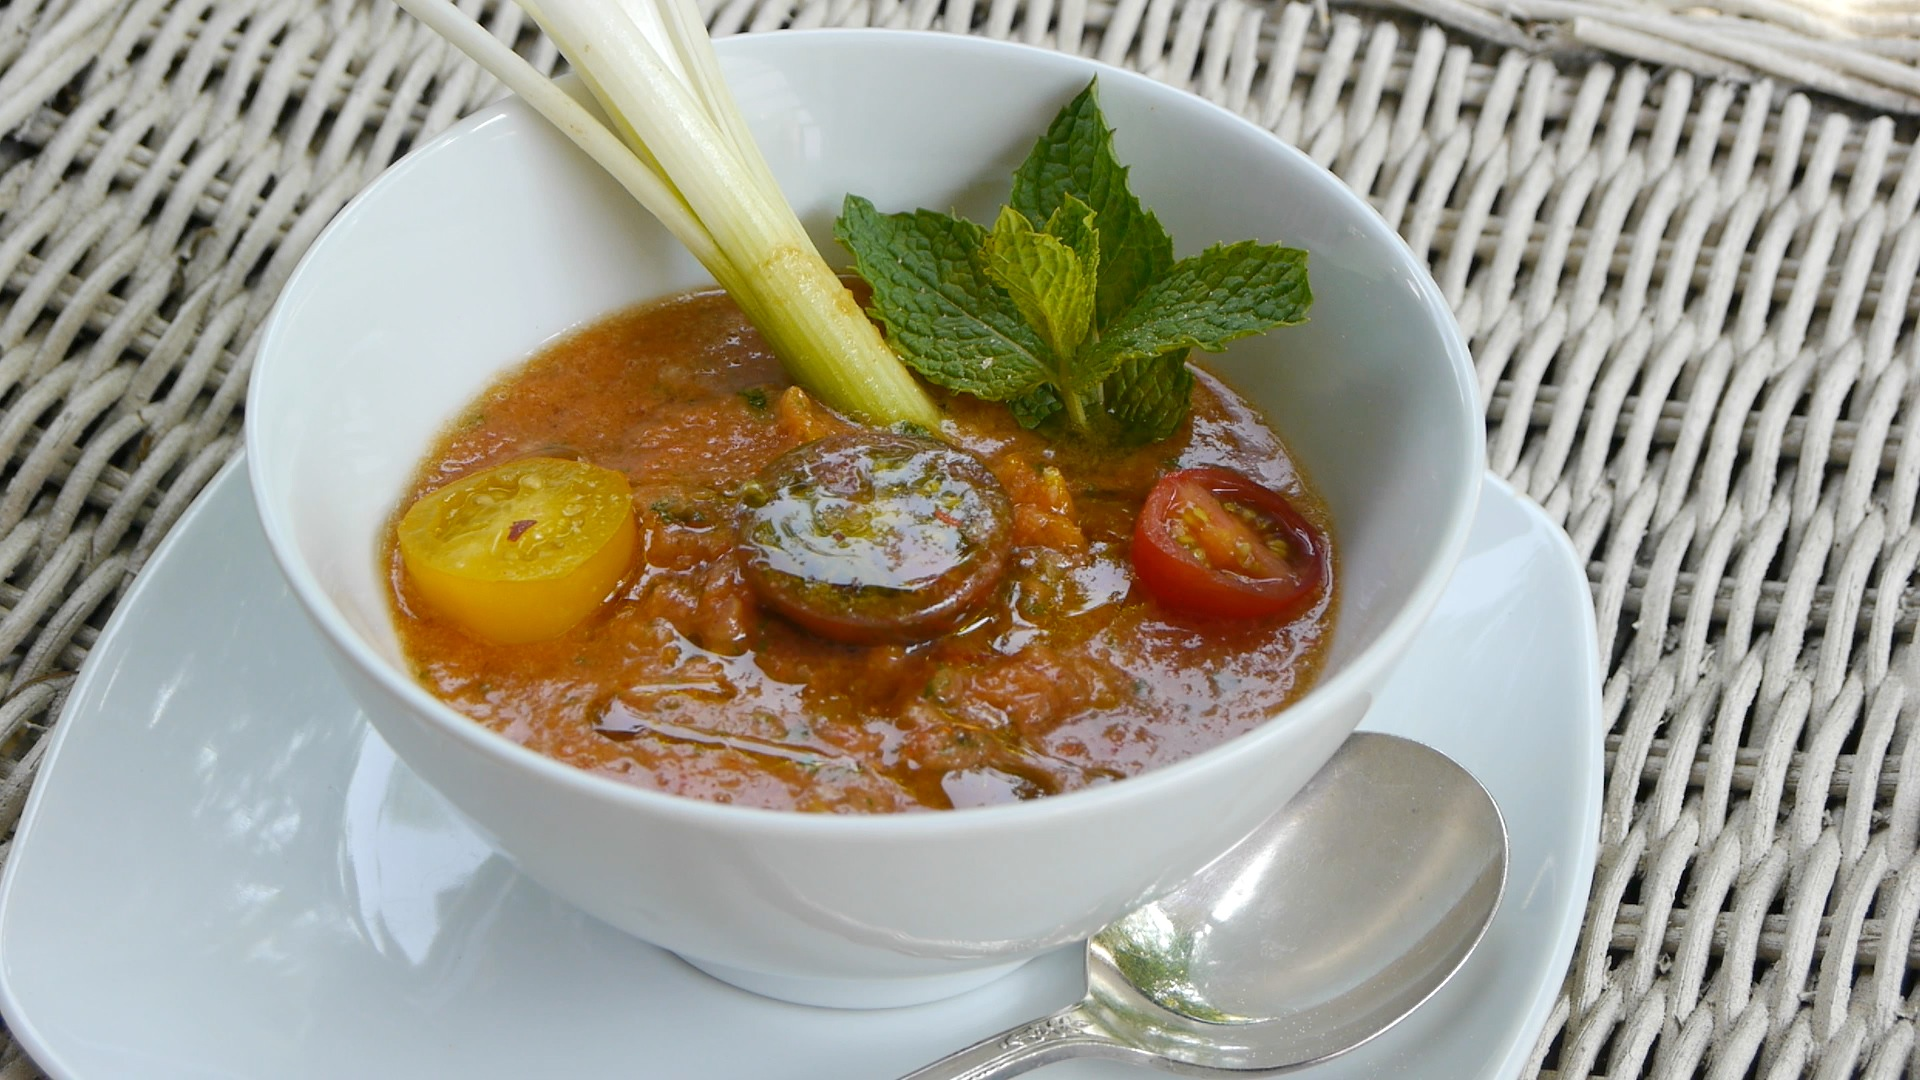 Chilled Heirloom Tomato Soup With Avocado & Lime